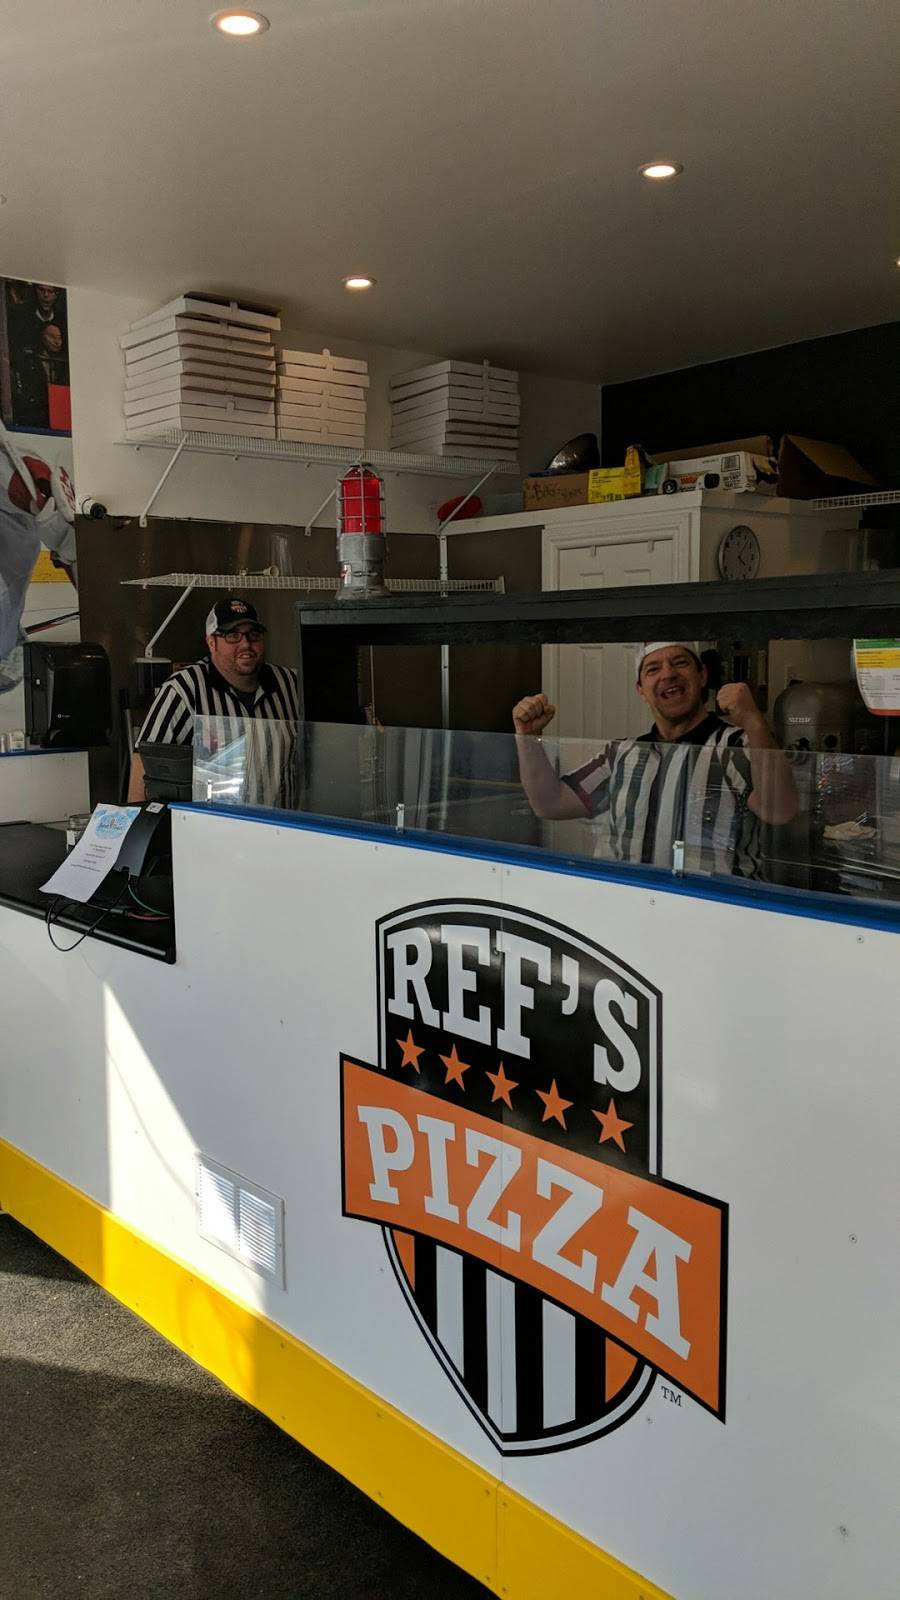 REFS PIZZA | meal delivery | 244 Barrie St unit 2, Thornton, ON L0L 2N0, Canada | 7052911919 OR +1 705-291-1919